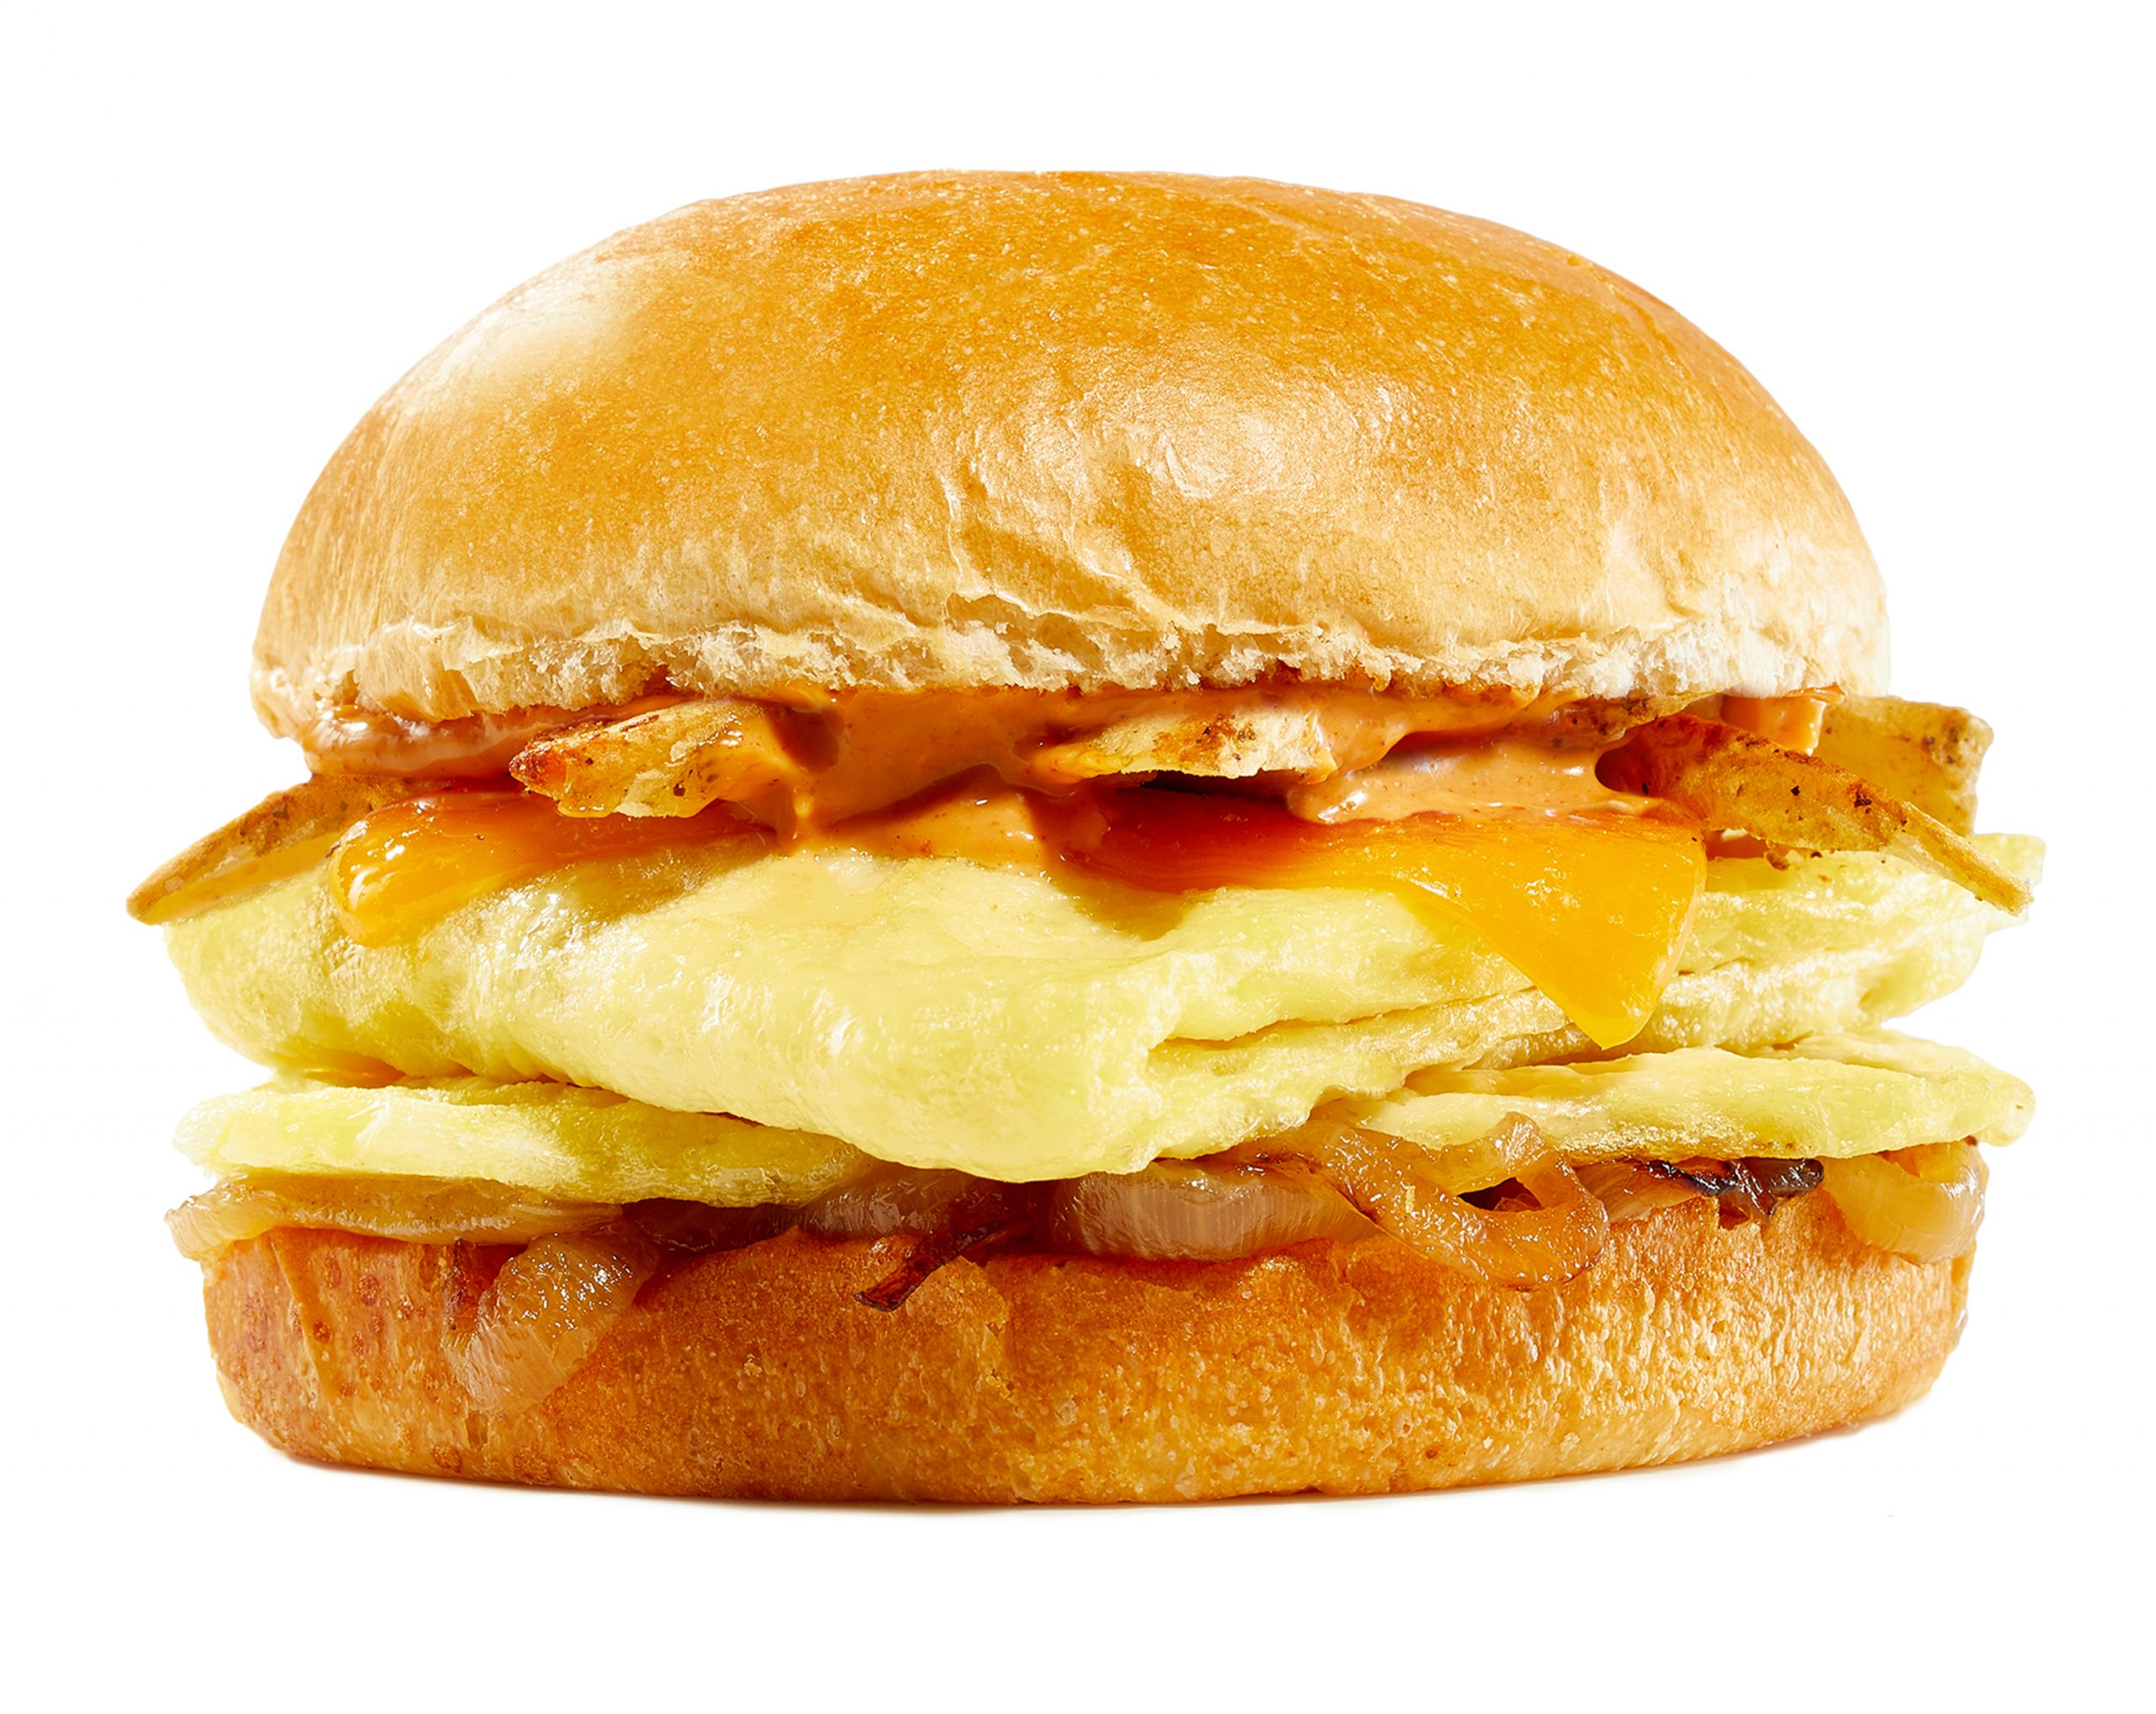 Fluffy, folded egg in sandwich